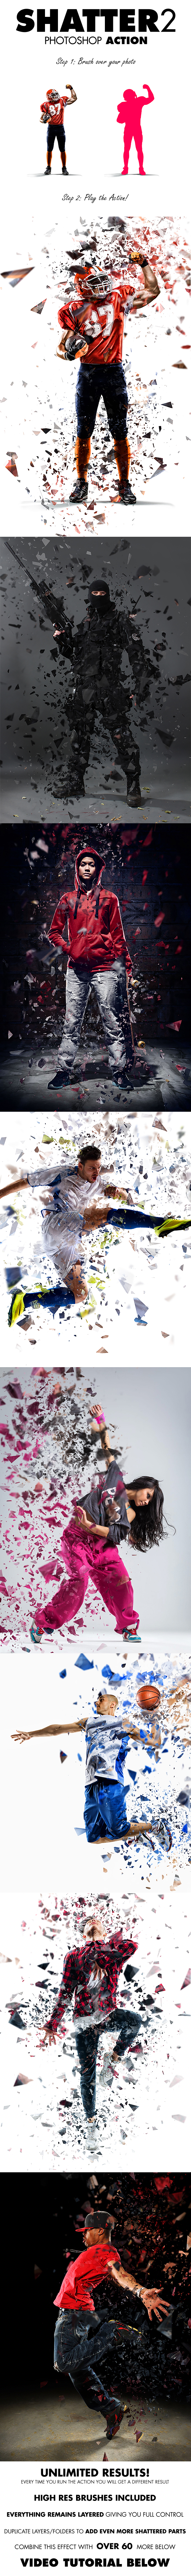 Graphicriver   Shatter2 Photoshop Action Free Download free download Graphicriver   Shatter2 Photoshop Action Free Download nulled Graphicriver   Shatter2 Photoshop Action Free Download